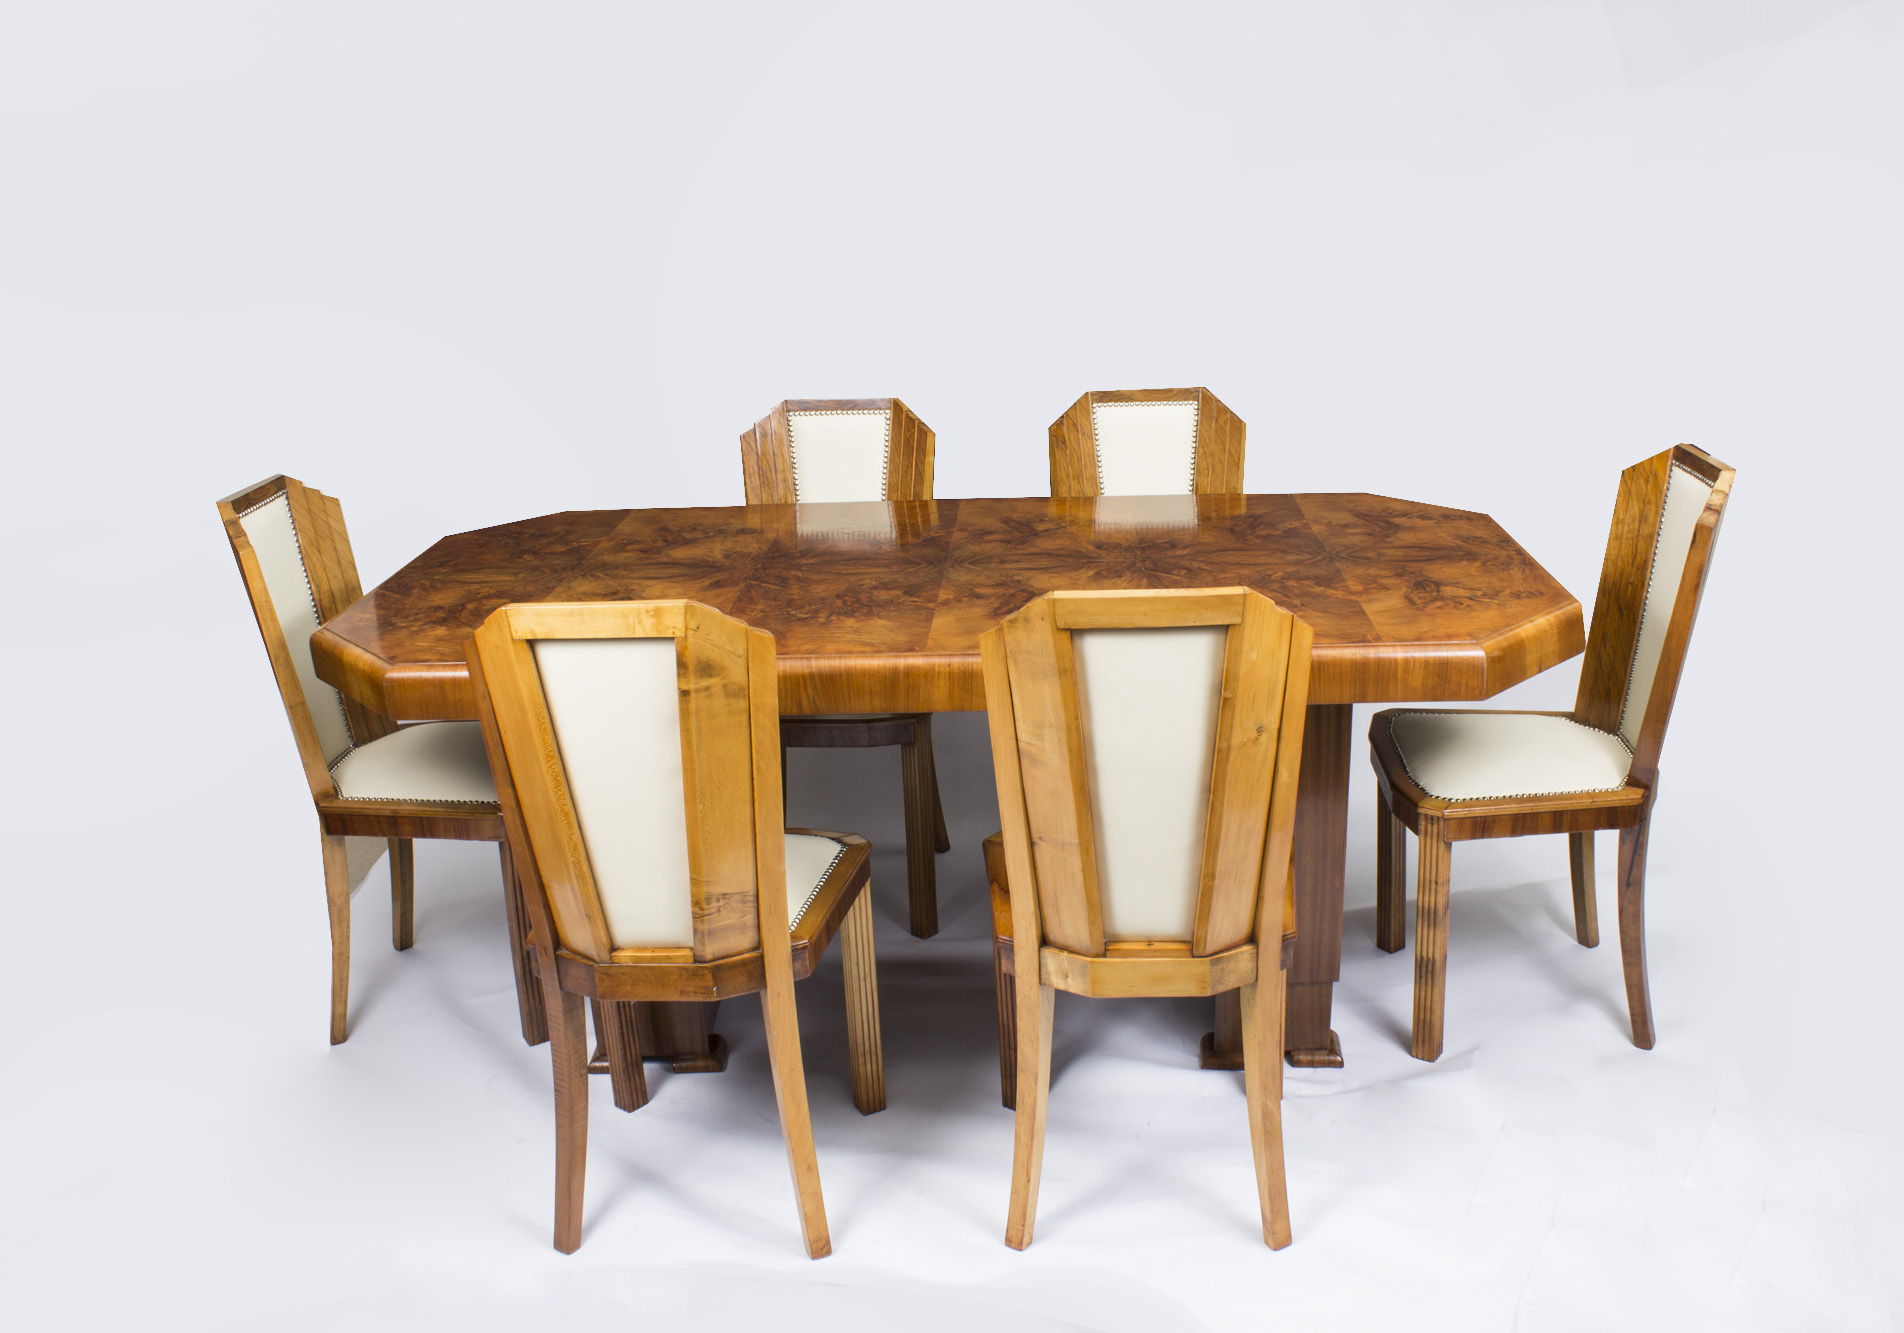 antique art deco dining table chair set art deco dining table chairs ref no 06906. Black Bedroom Furniture Sets. Home Design Ideas